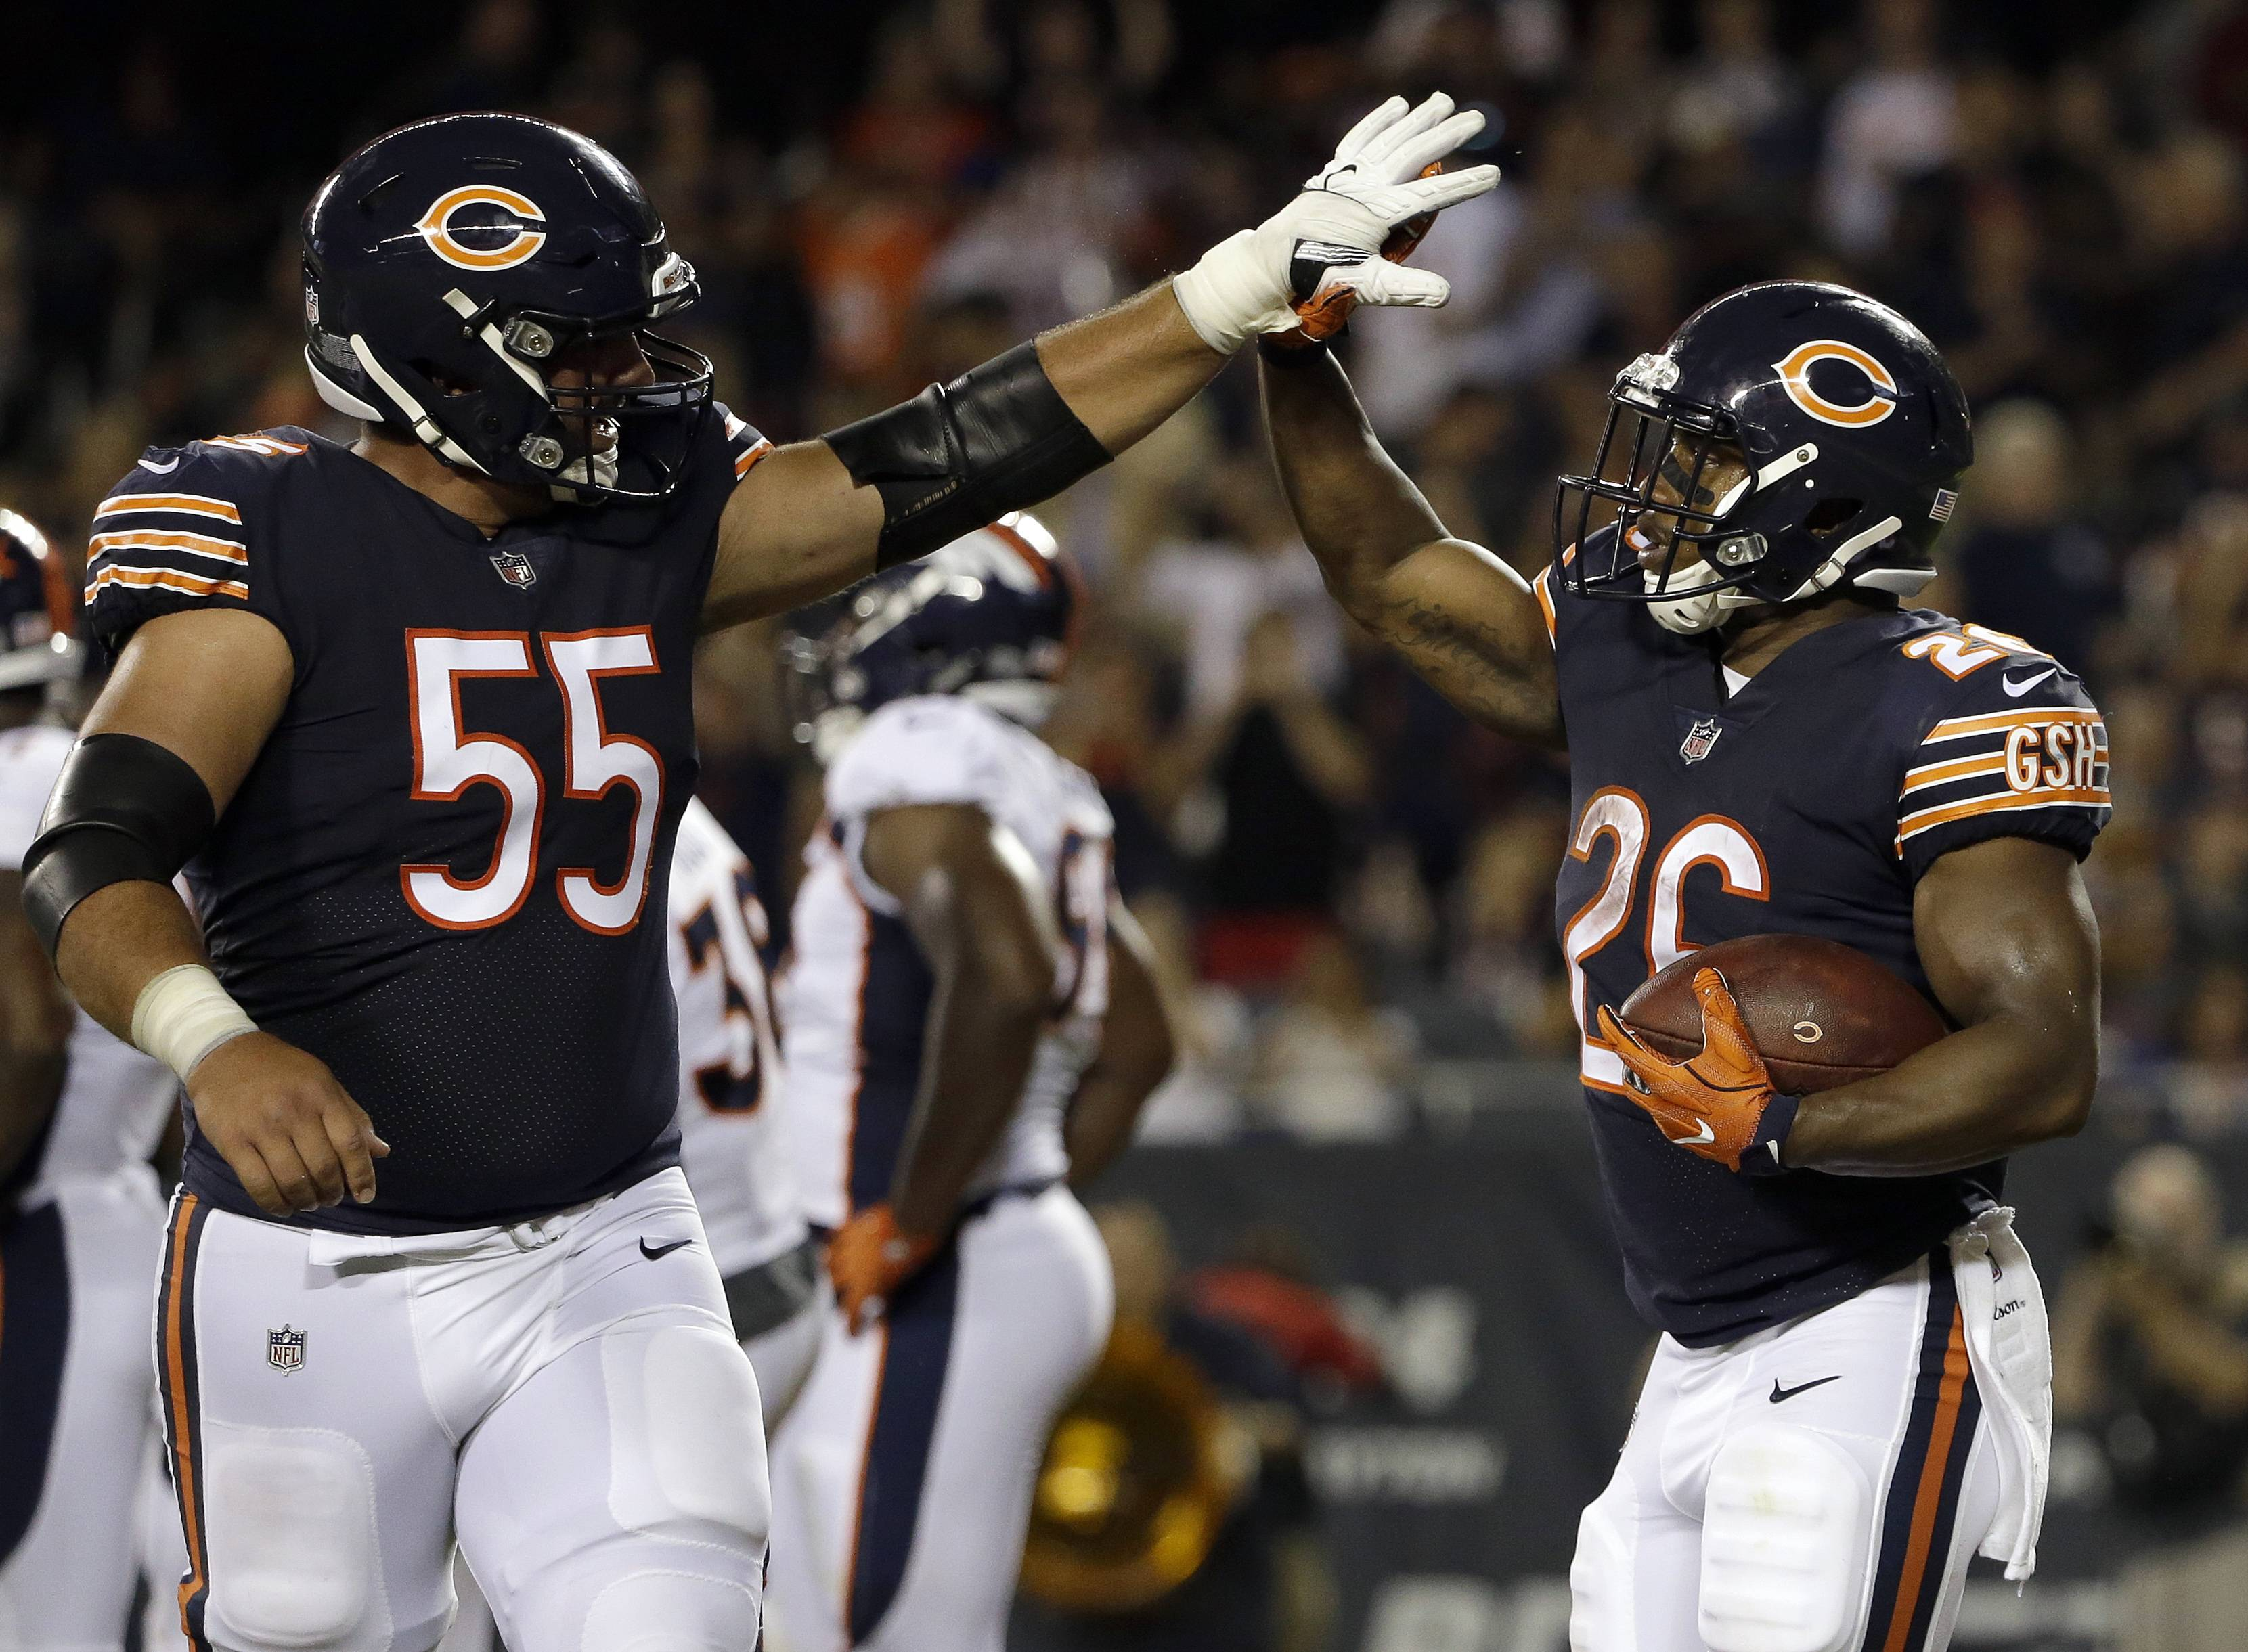 LeGere: Bears have a deep, diverse running game